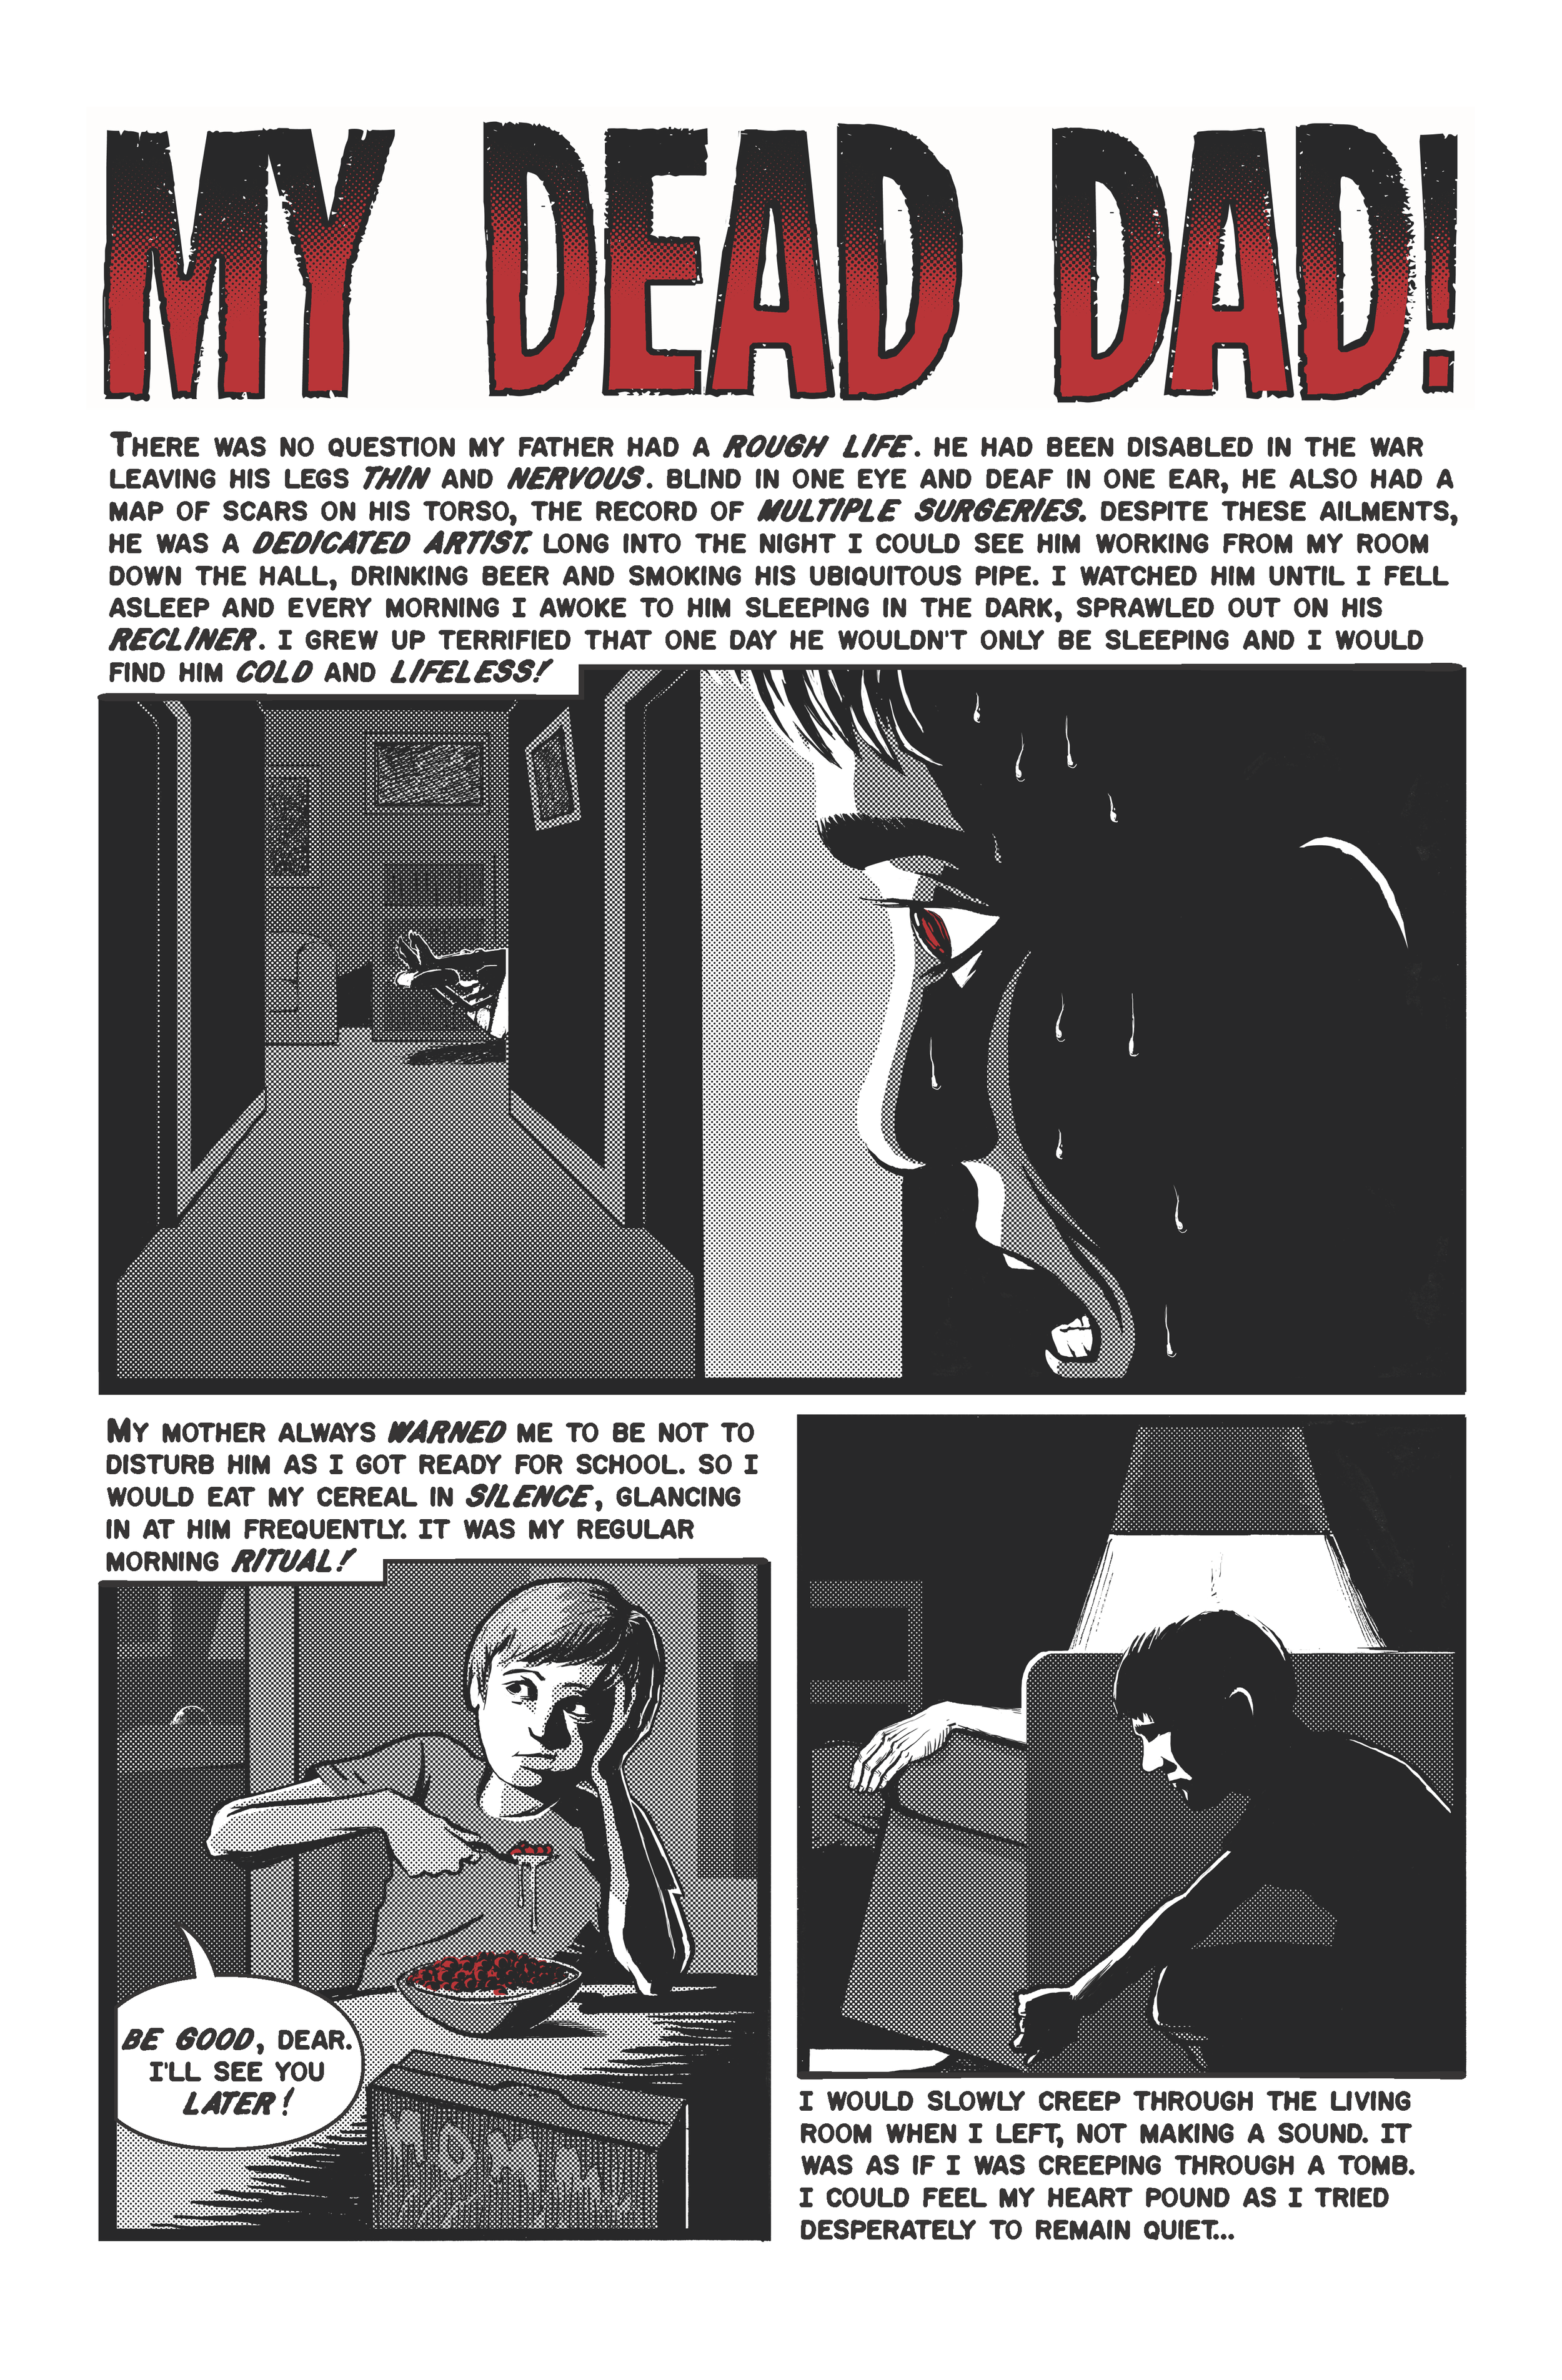 GK_MDD_Page_1.png